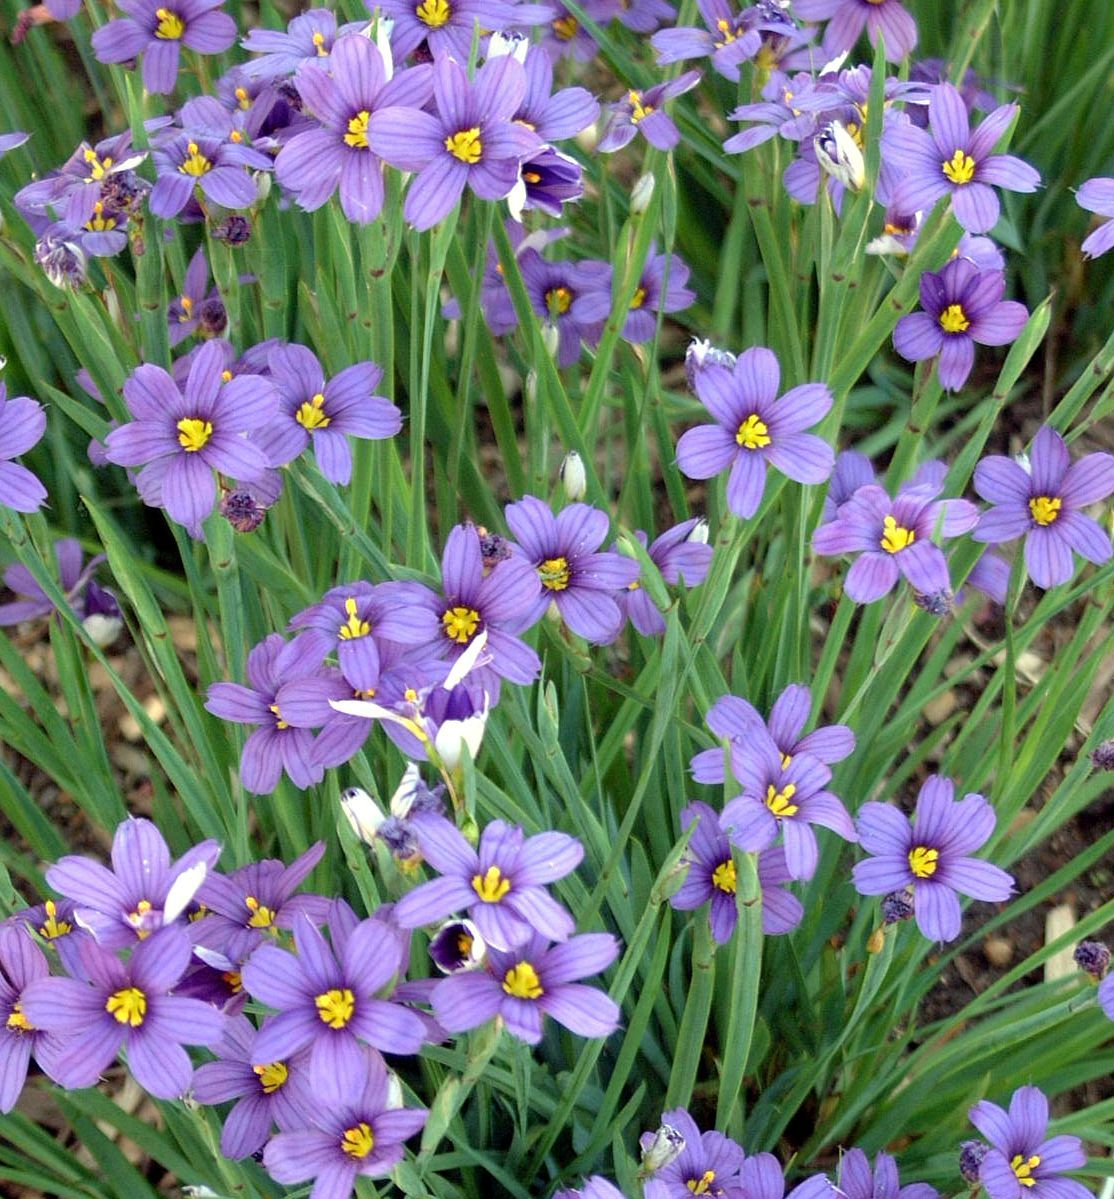 Easy To Grow Perennial With Tidy Dark Green Grass Like Foliage And